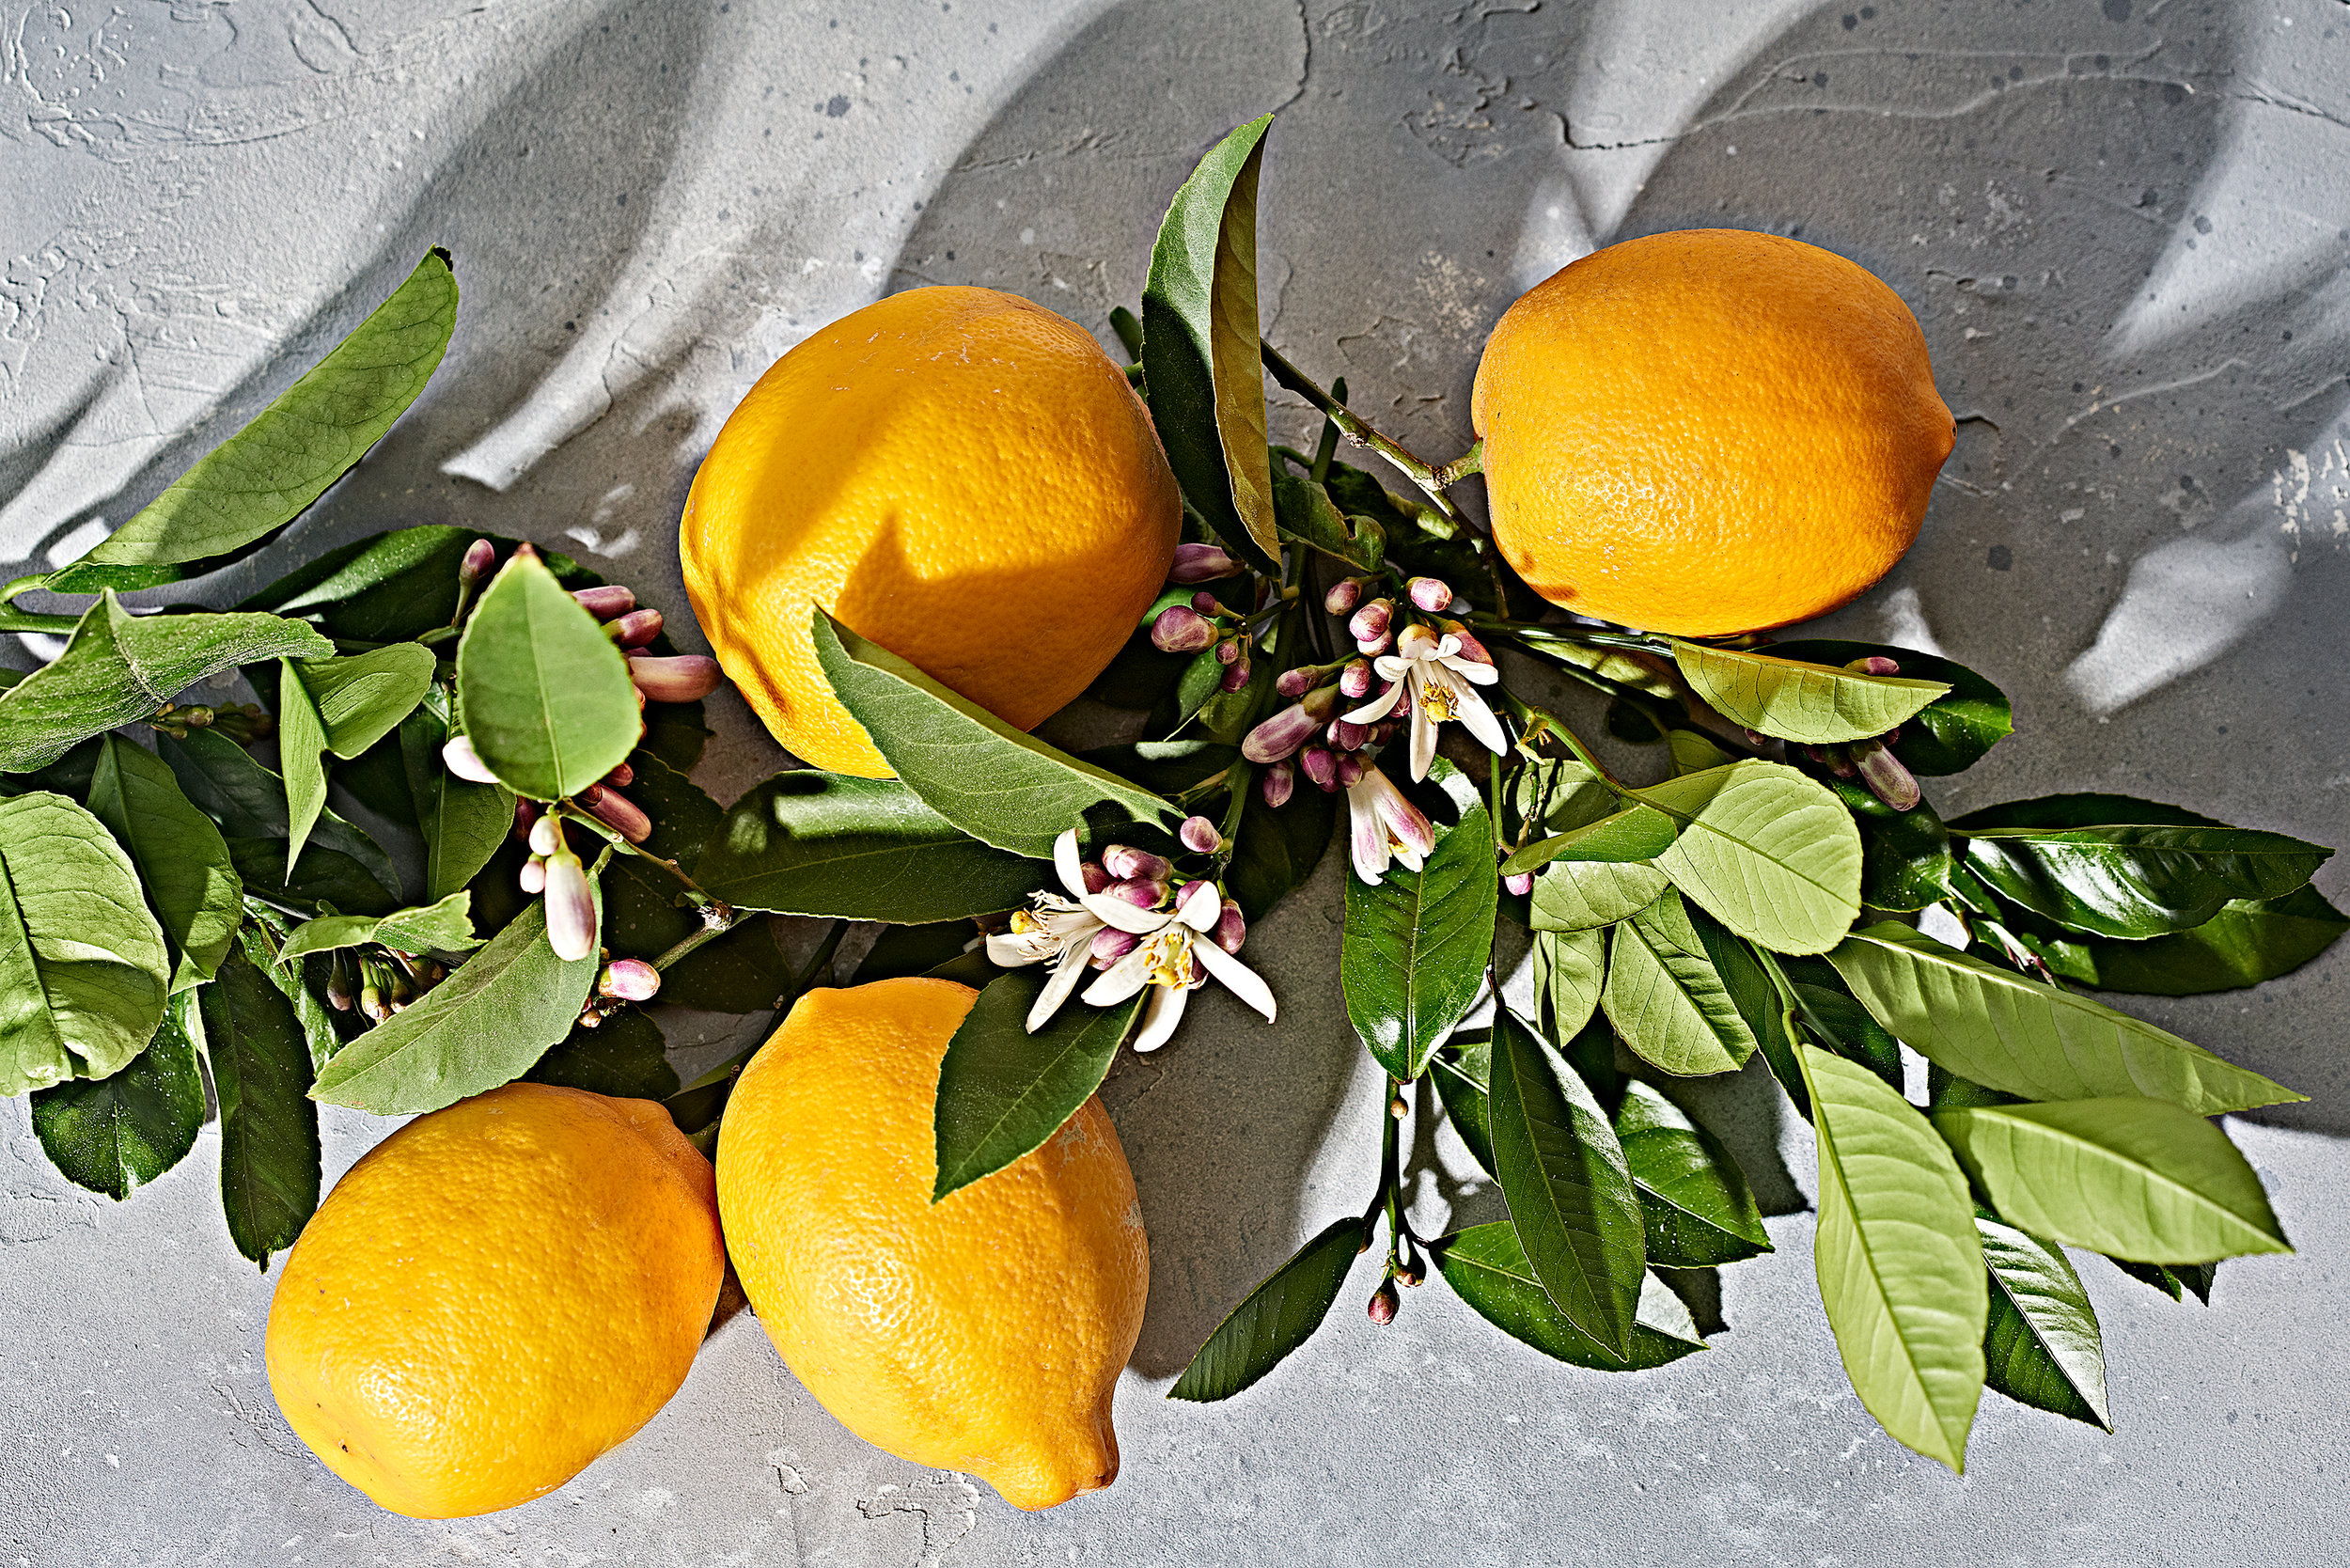 Meyer lemons attached to branch with citrus blossom and leaves